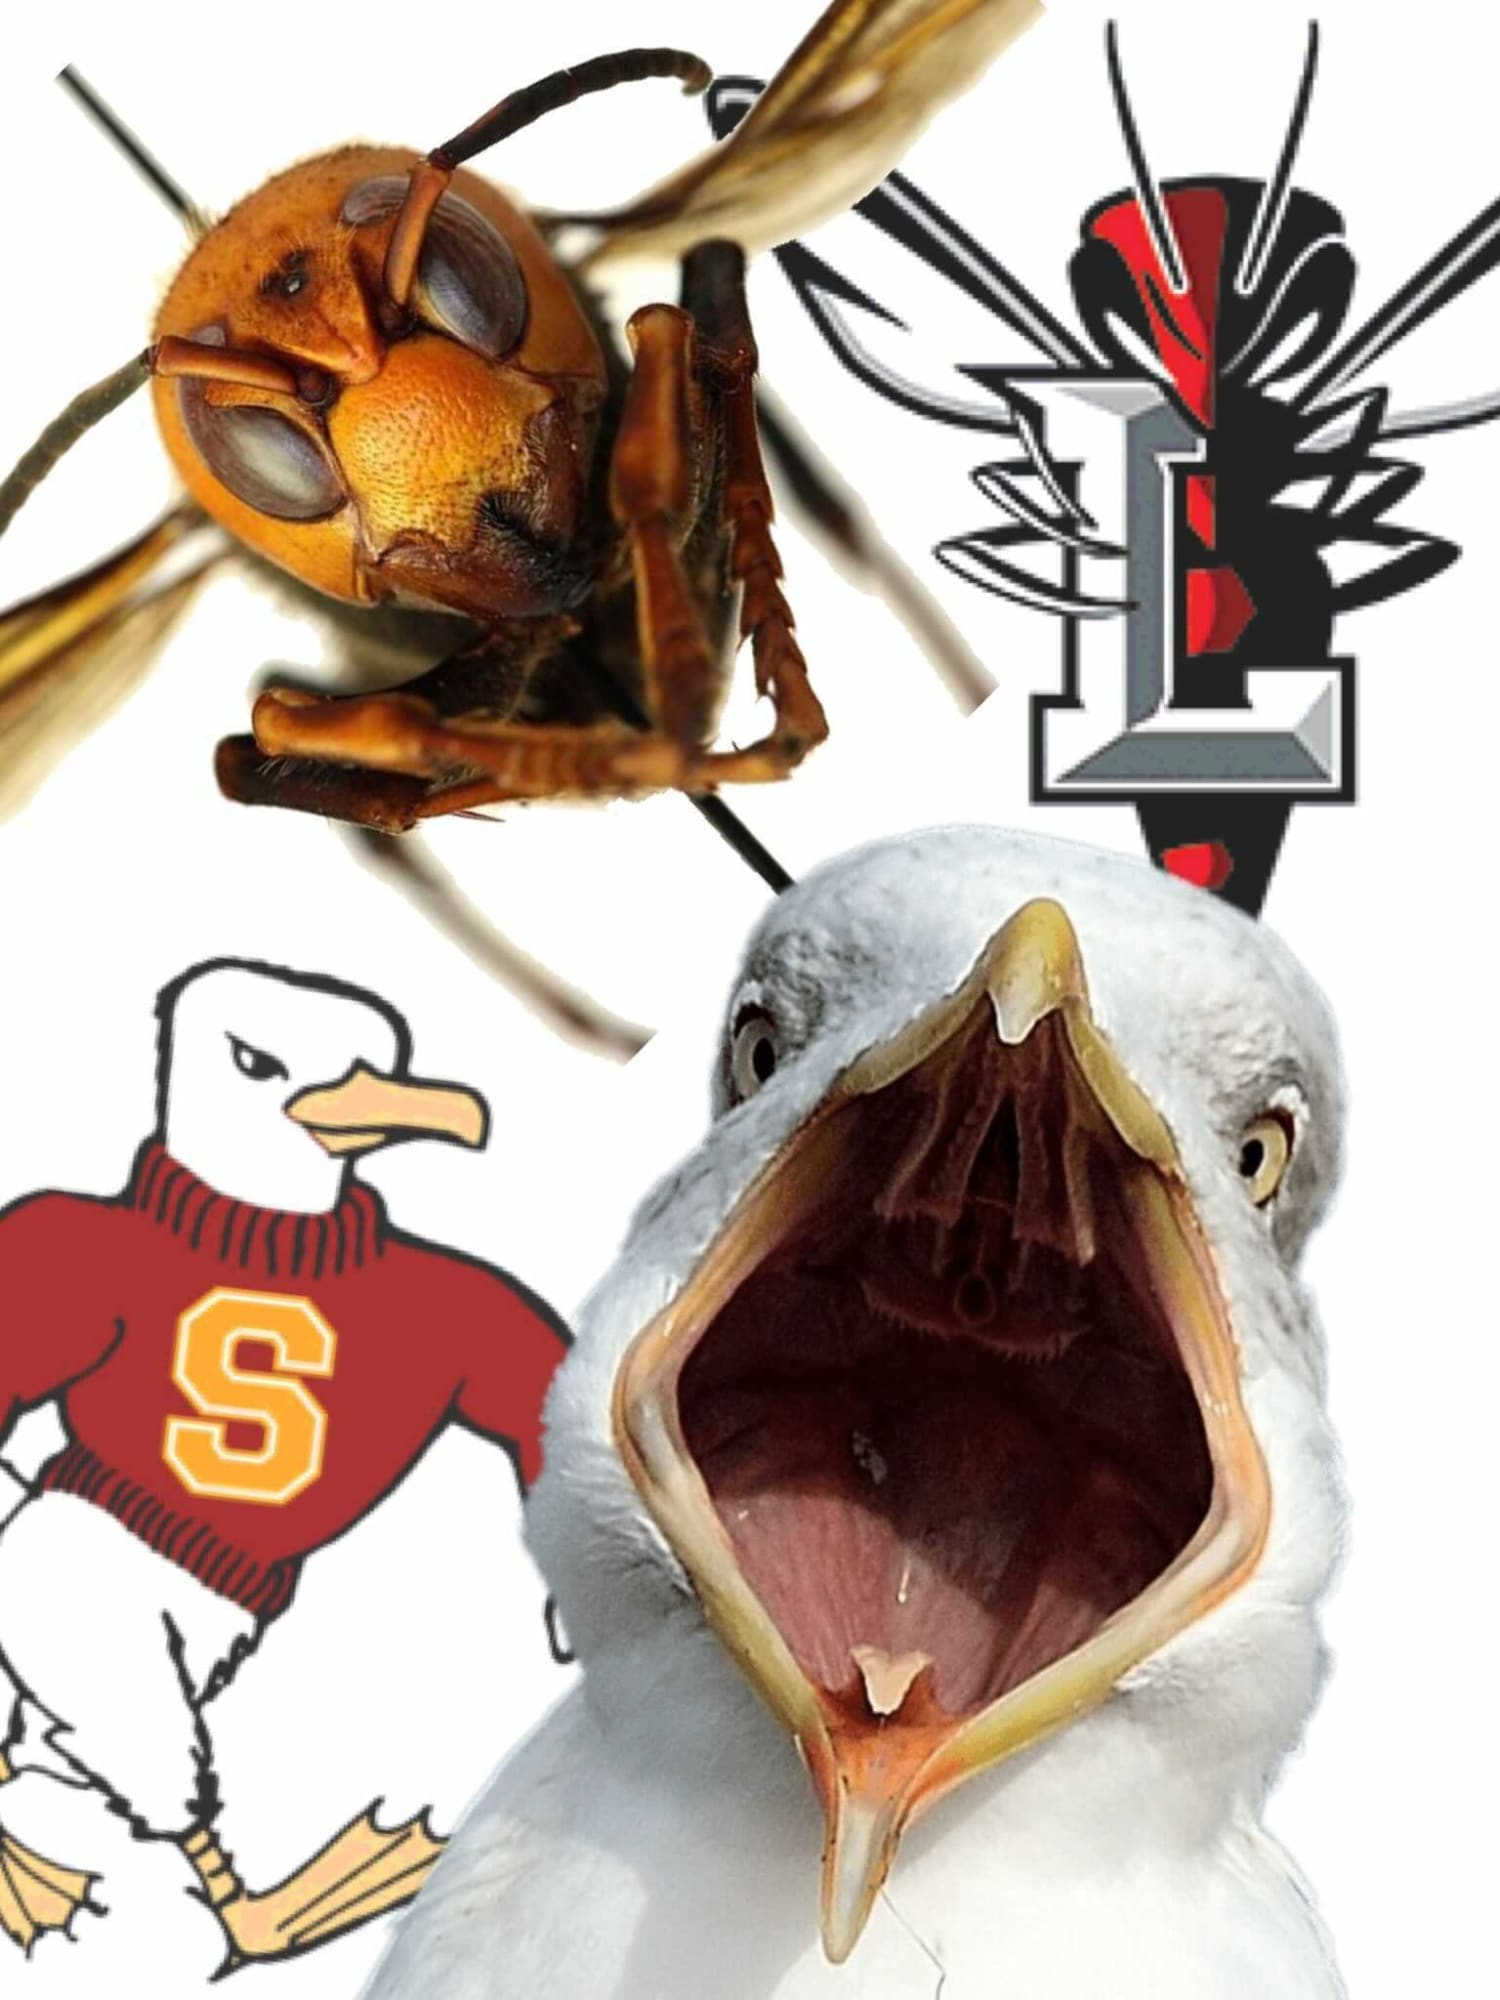 Lynchburg lacrosse knocking Salisbury off its No. 1 perch was the biggest DIII result of the week, but there was other key action, too.